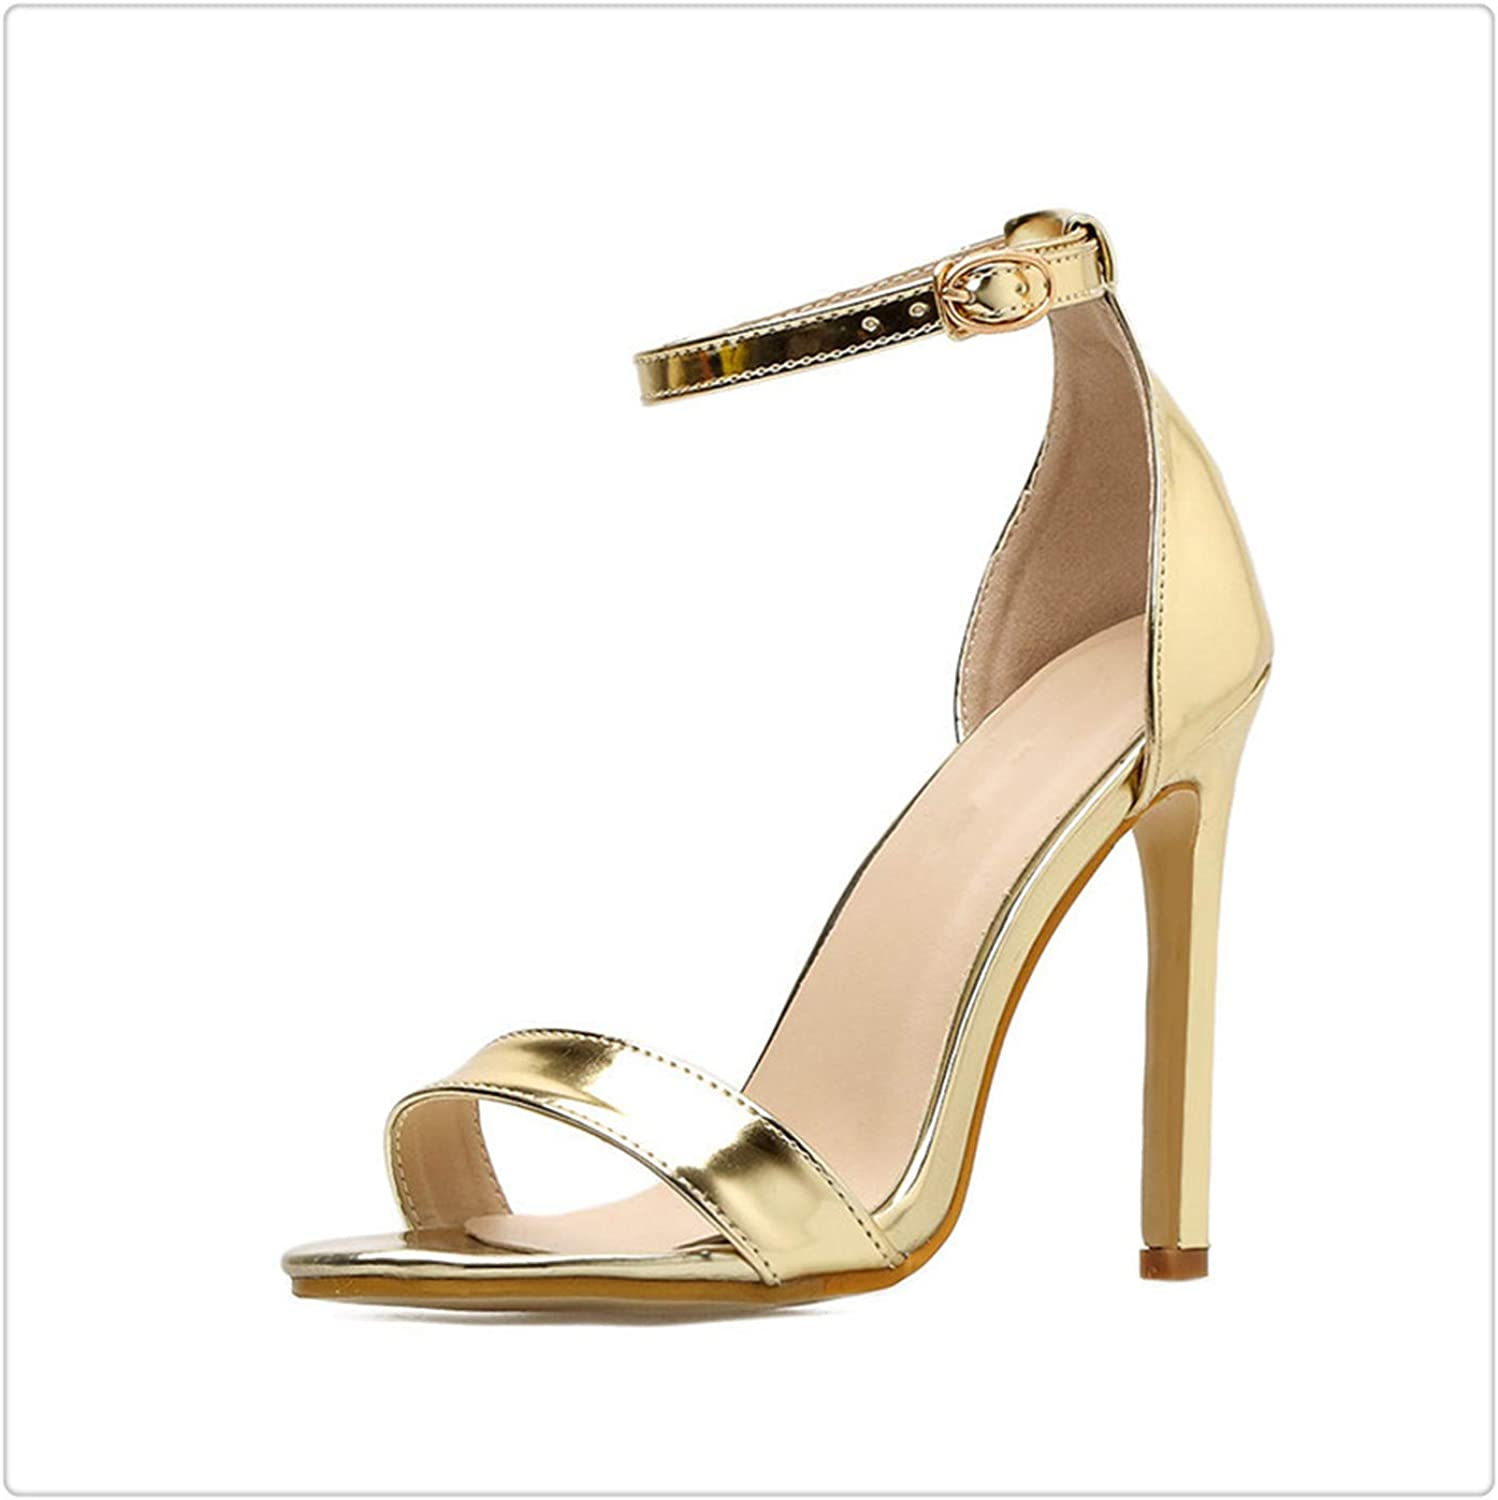 Yyixianma Extreme High Heel Sandals Women Patent Leather Women Summer shoes 2018 Sexy Women Sandals 11 cm gold 5